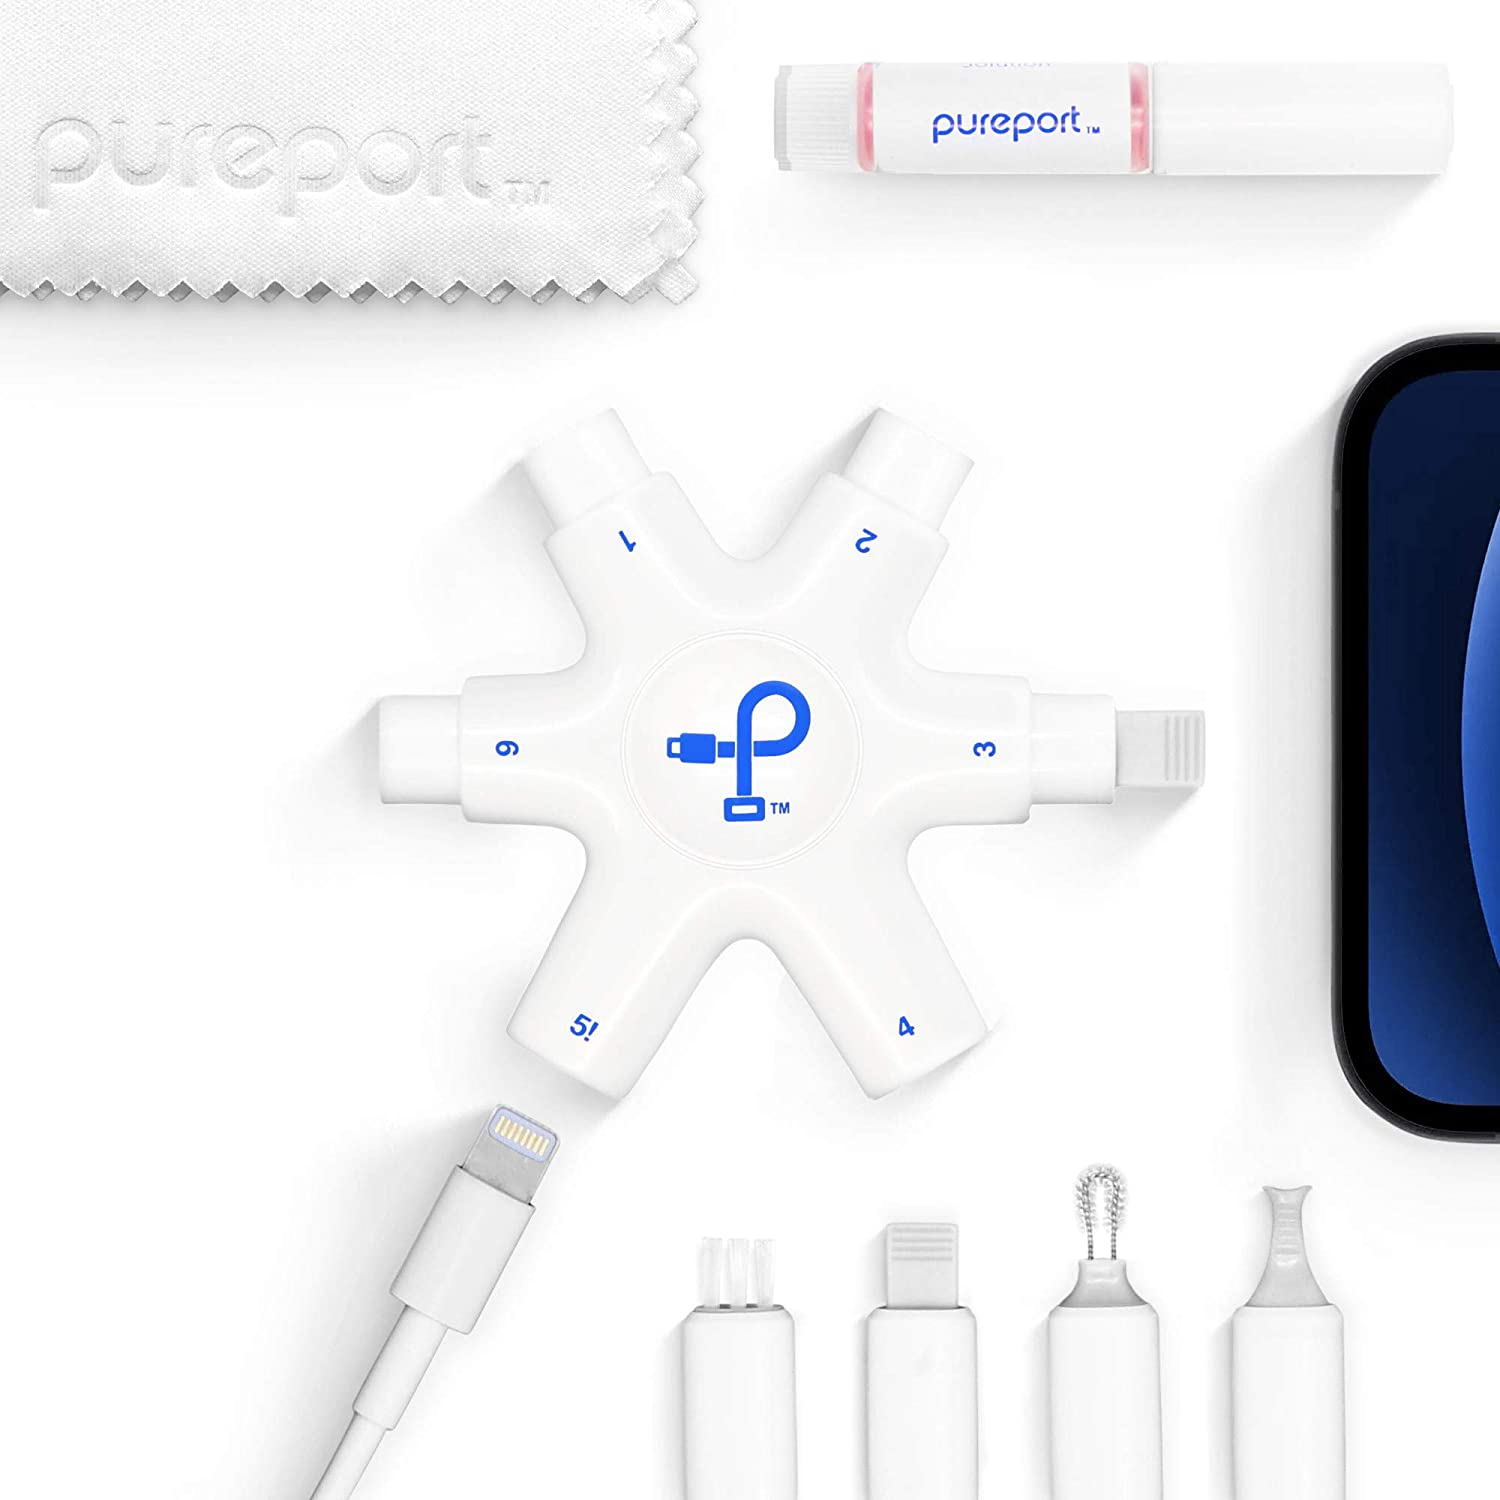 PurePort Multi-Tool Kit – Clean & Repair iPhone and iPad Lightning Ports, Cables and Connectors. Remove Lint, Dust, Dirt Safely and Easily. Fix Unreliable Charging and Bad Connections.